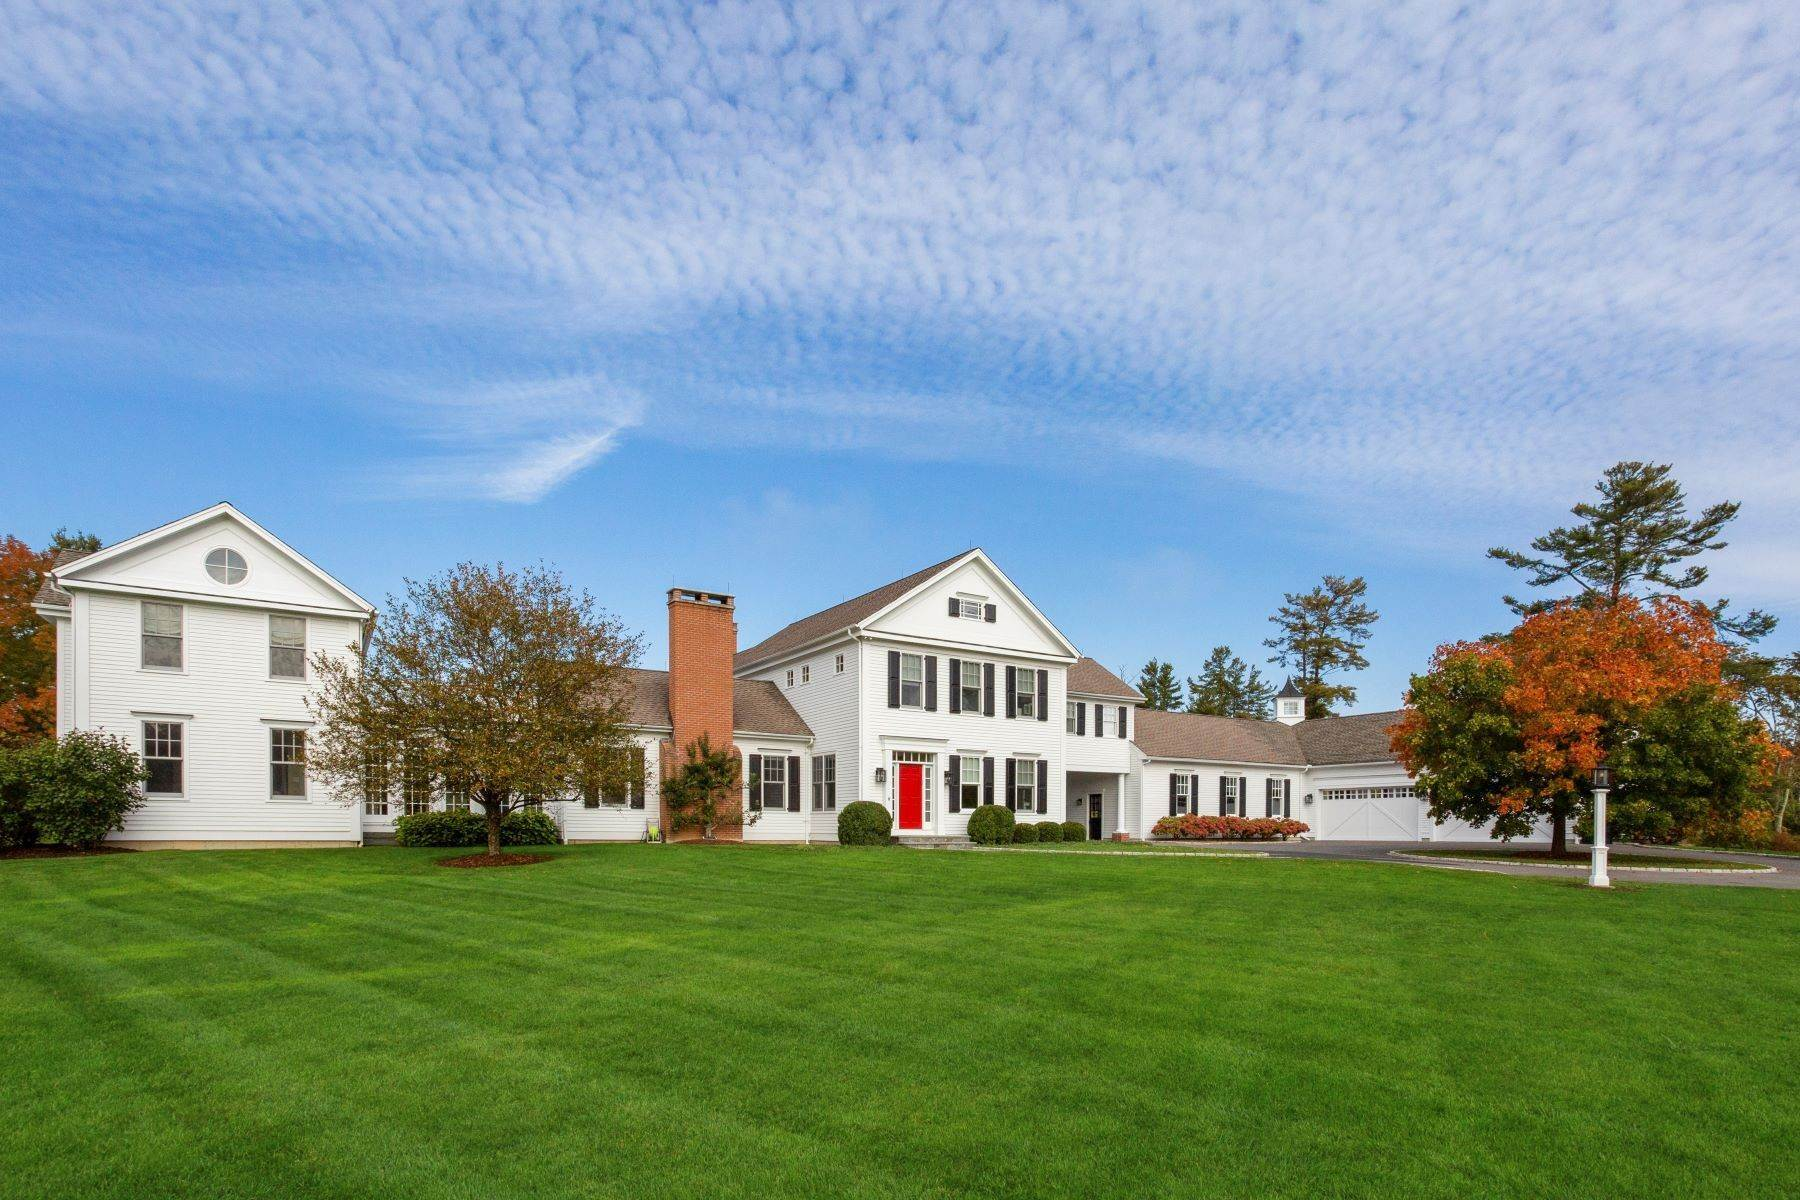 Single Family Homes for Sale at Country Retreat 8 Greystone Lane Salisbury, Connecticut 06039 United States